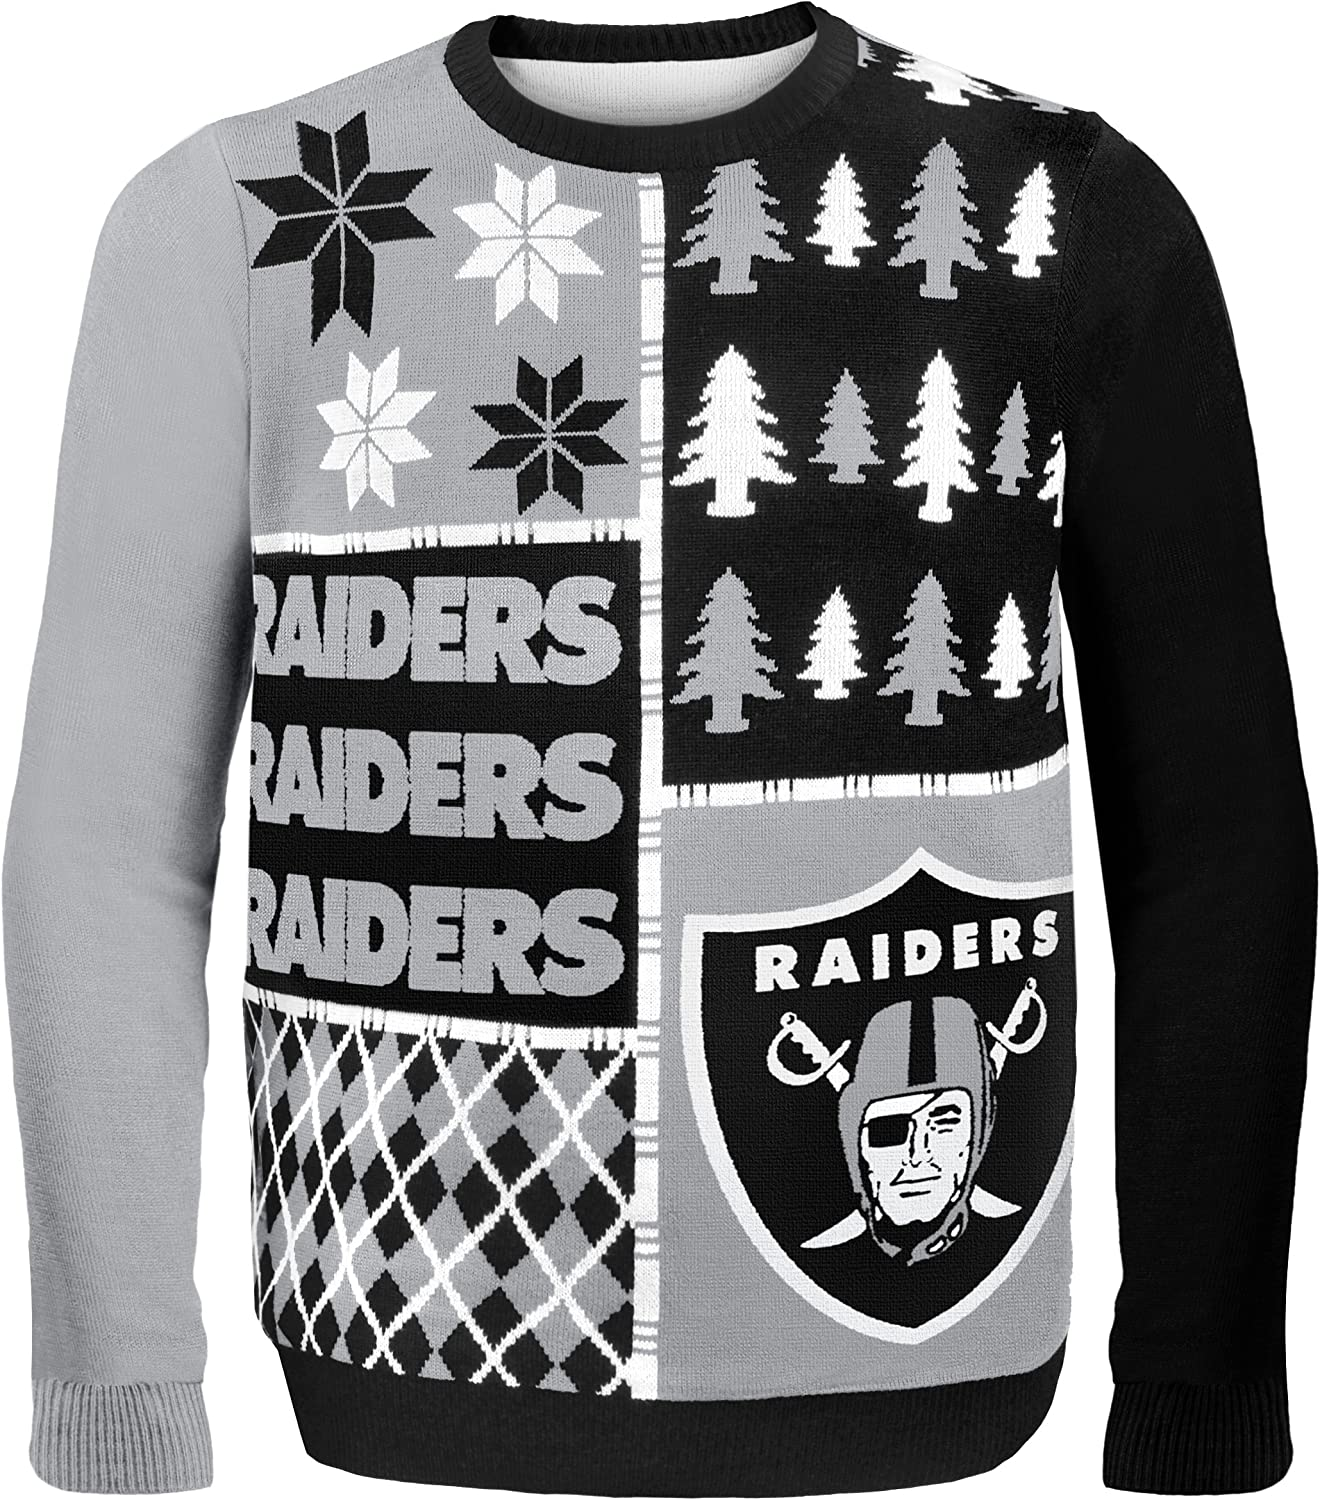 Medium NFL Oakland Raiders BUSY BLOCK Ugly Sweater